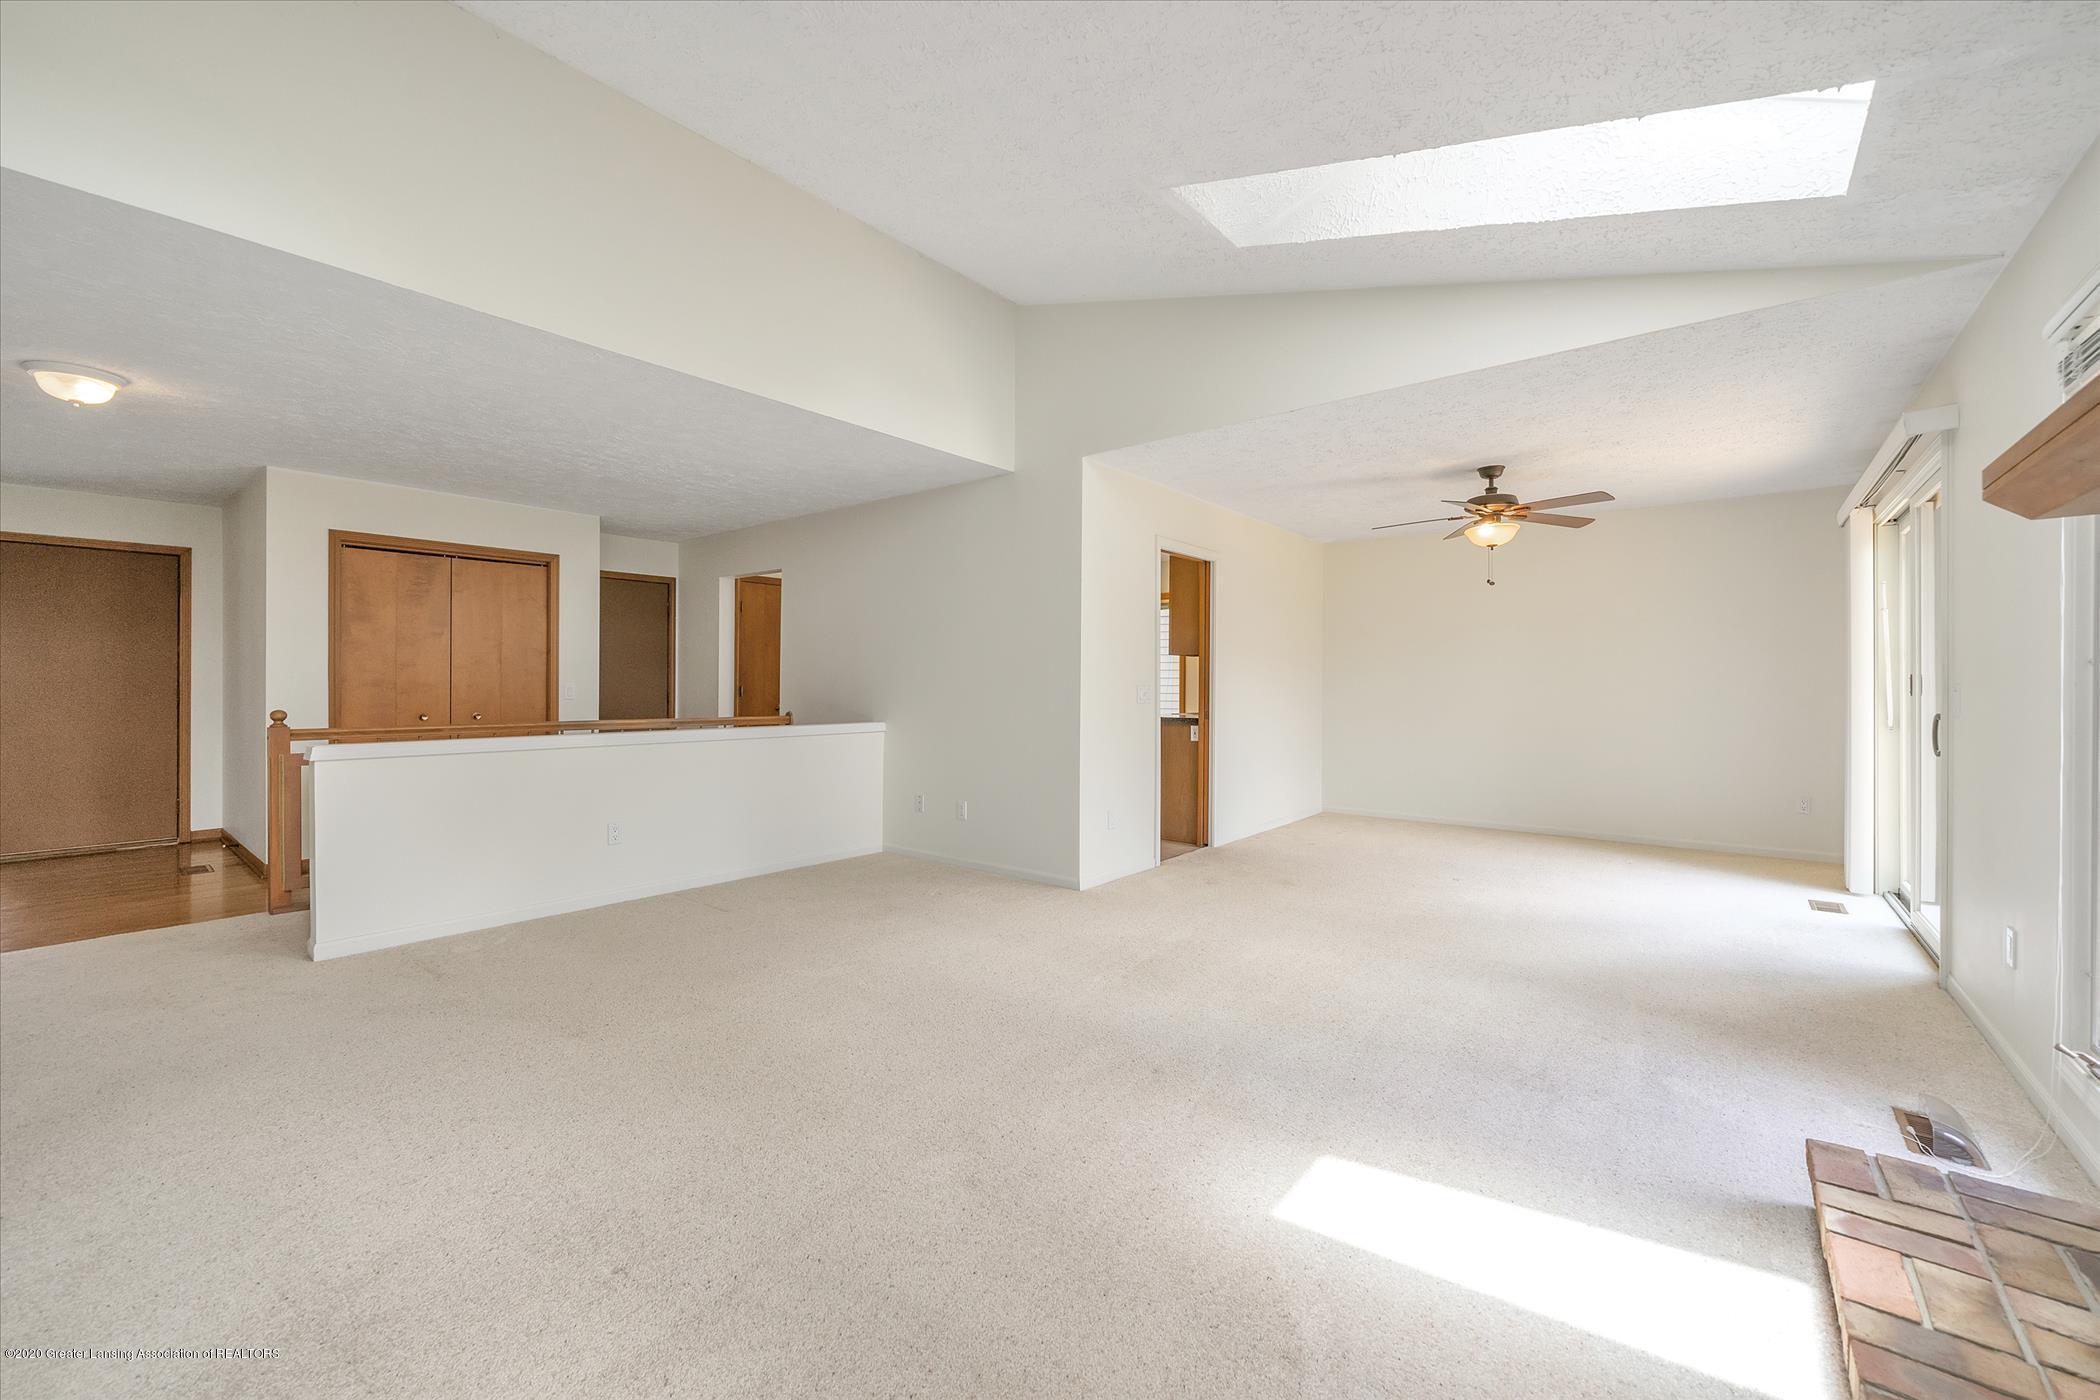 2605 Woodhill Dr - Greatroom view to Dining Area - 5